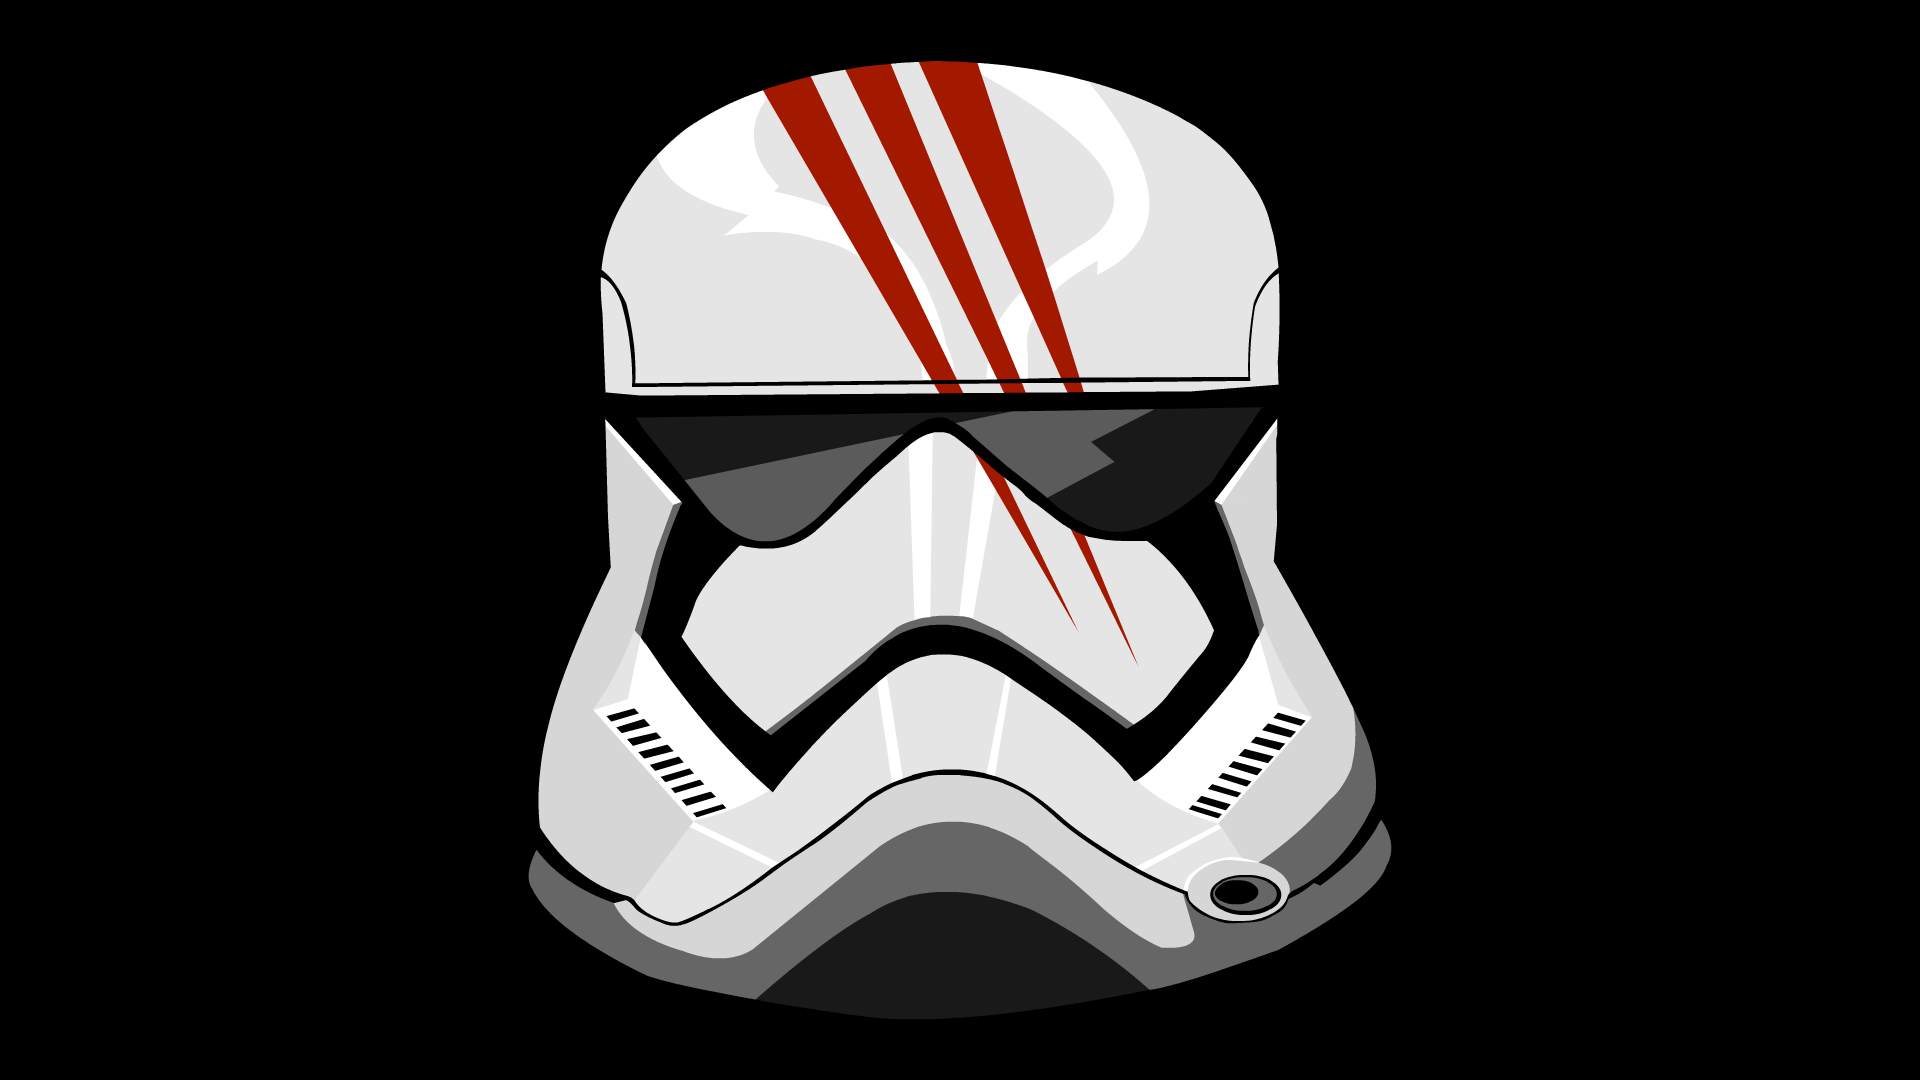 Lego star wars the force awakens clipart